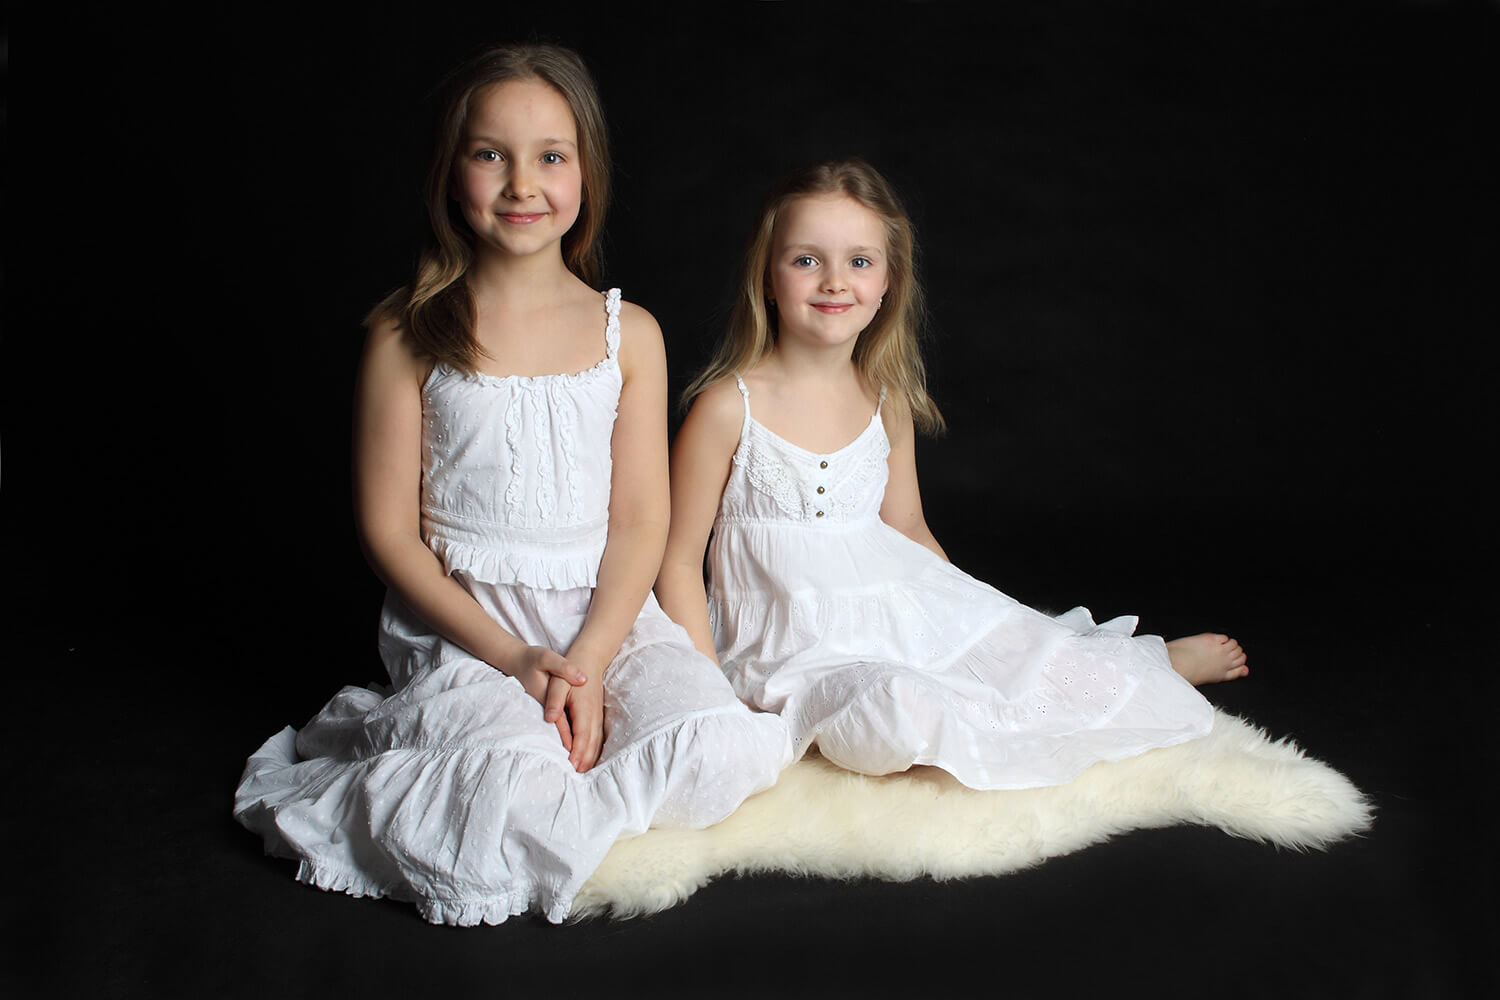 family photo of two sisters in white dresses sitting on a white fur